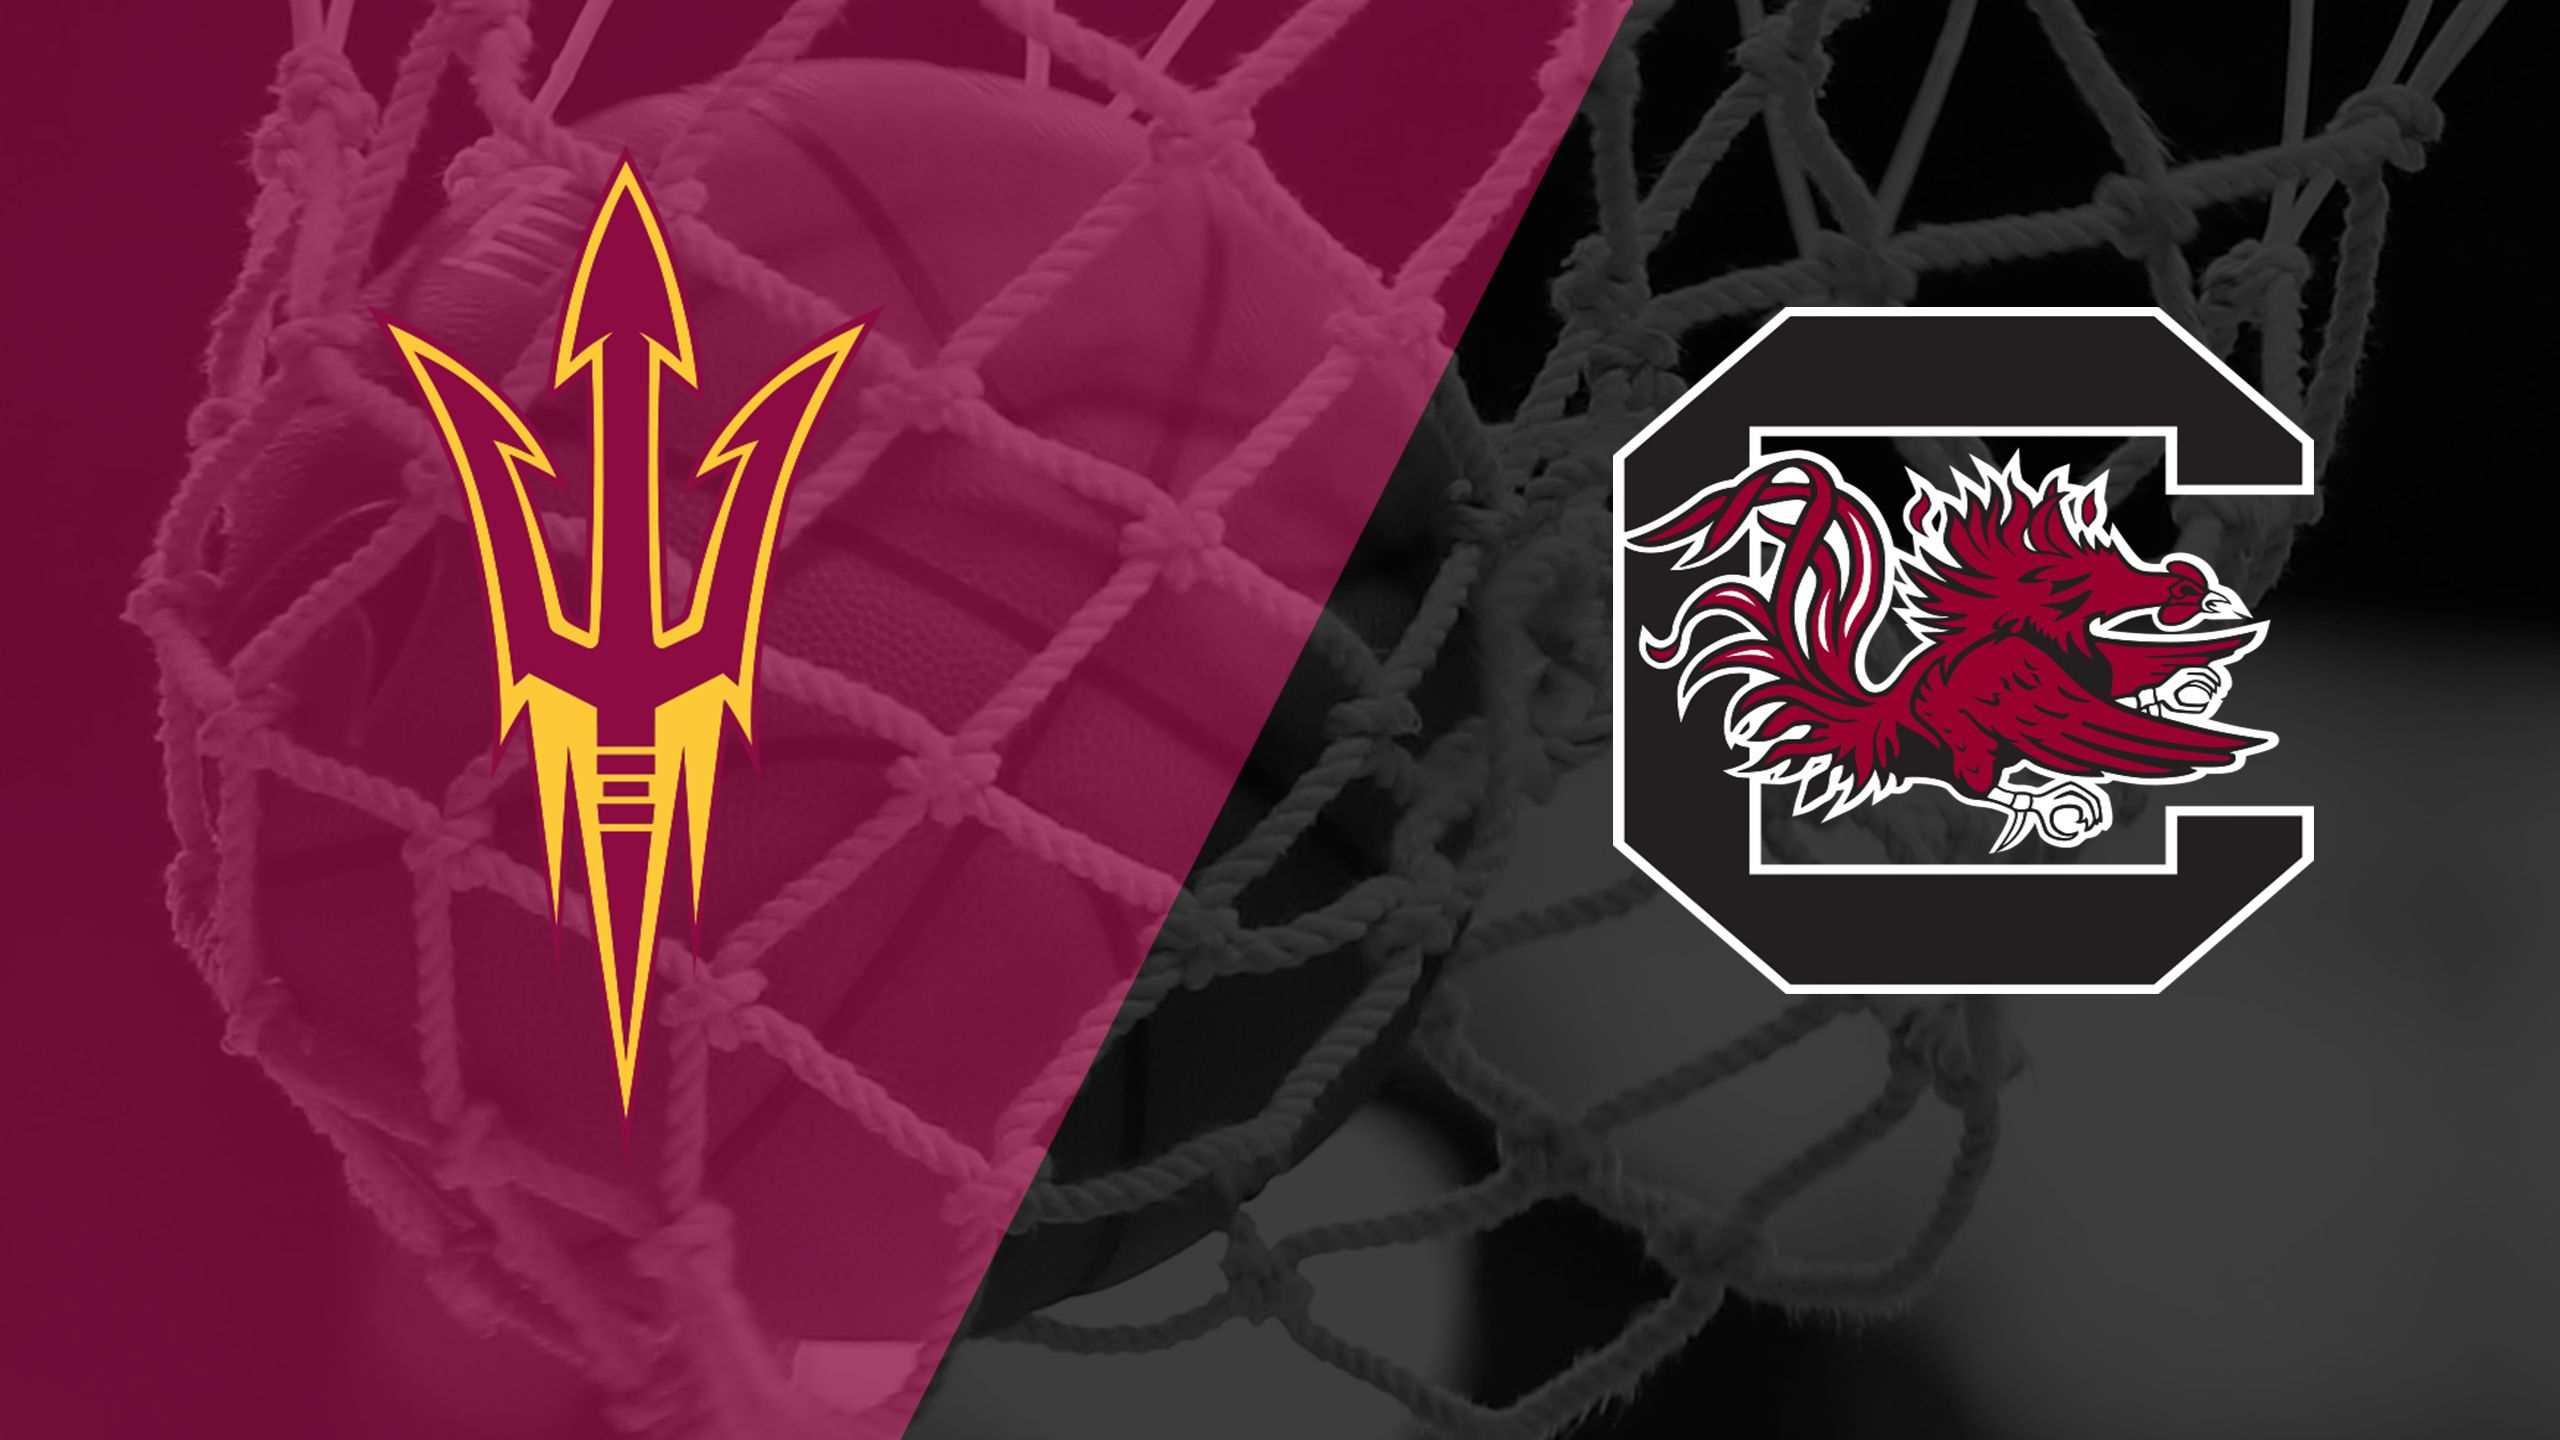 #8 Arizona State vs. #1 South Carolina (Second Round) (NCAA Women's Basketball Championship)